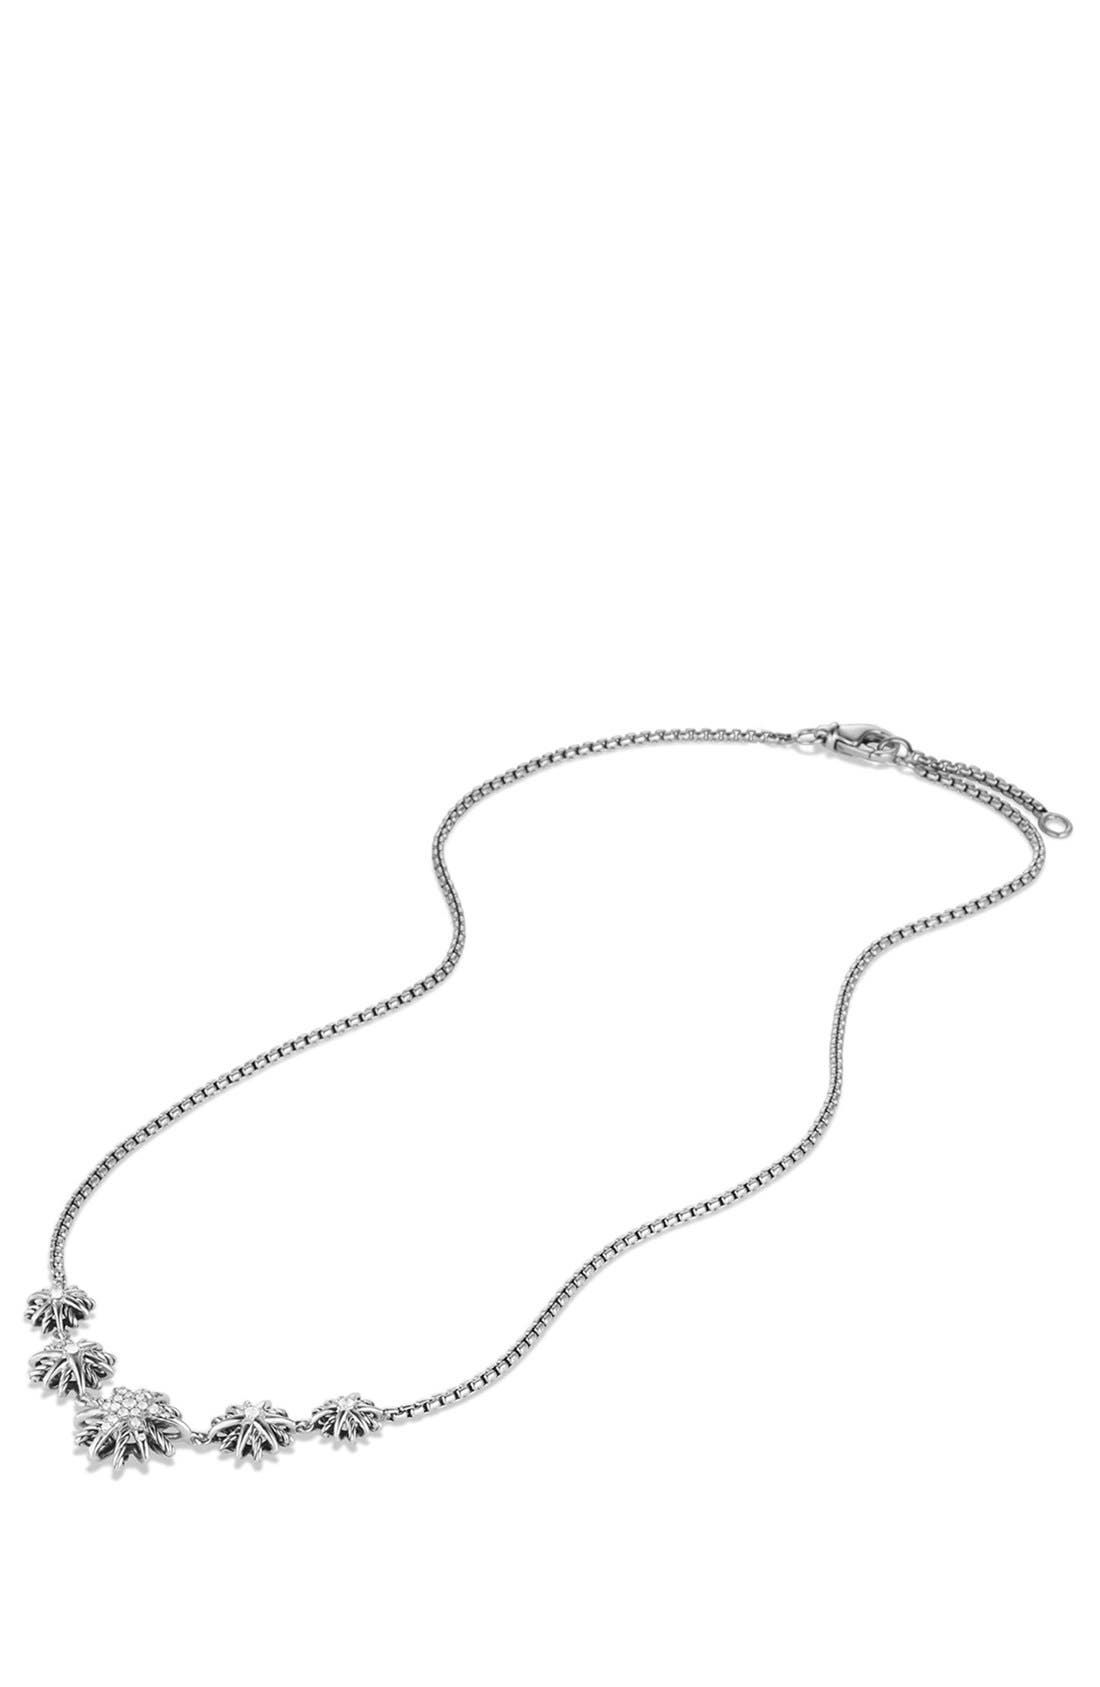 'Starburst' Five-Station Necklace with Diamonds,                             Alternate thumbnail 2, color,                             STERLING SILVER